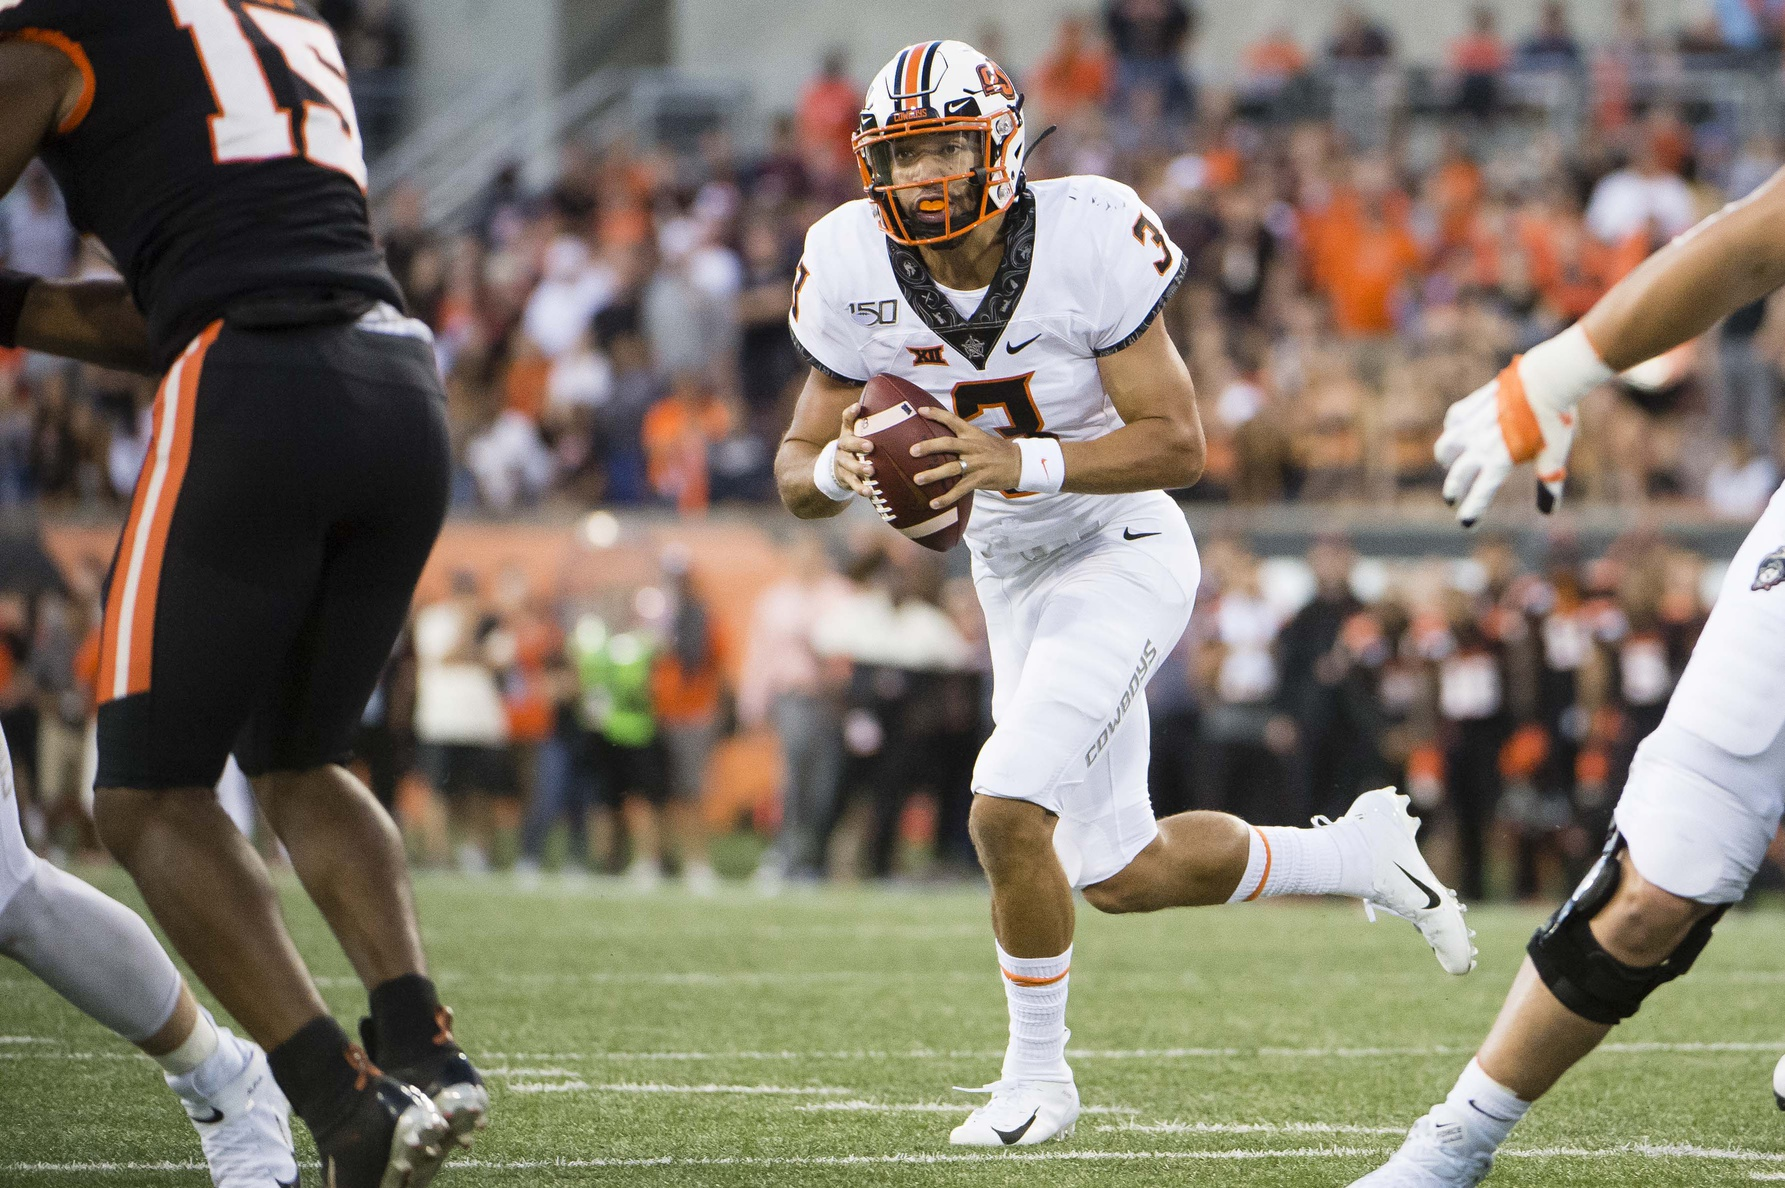 Spencer Sanders' Night Compares Well to Other OSU Quarterback Debuts | Pistols Firing